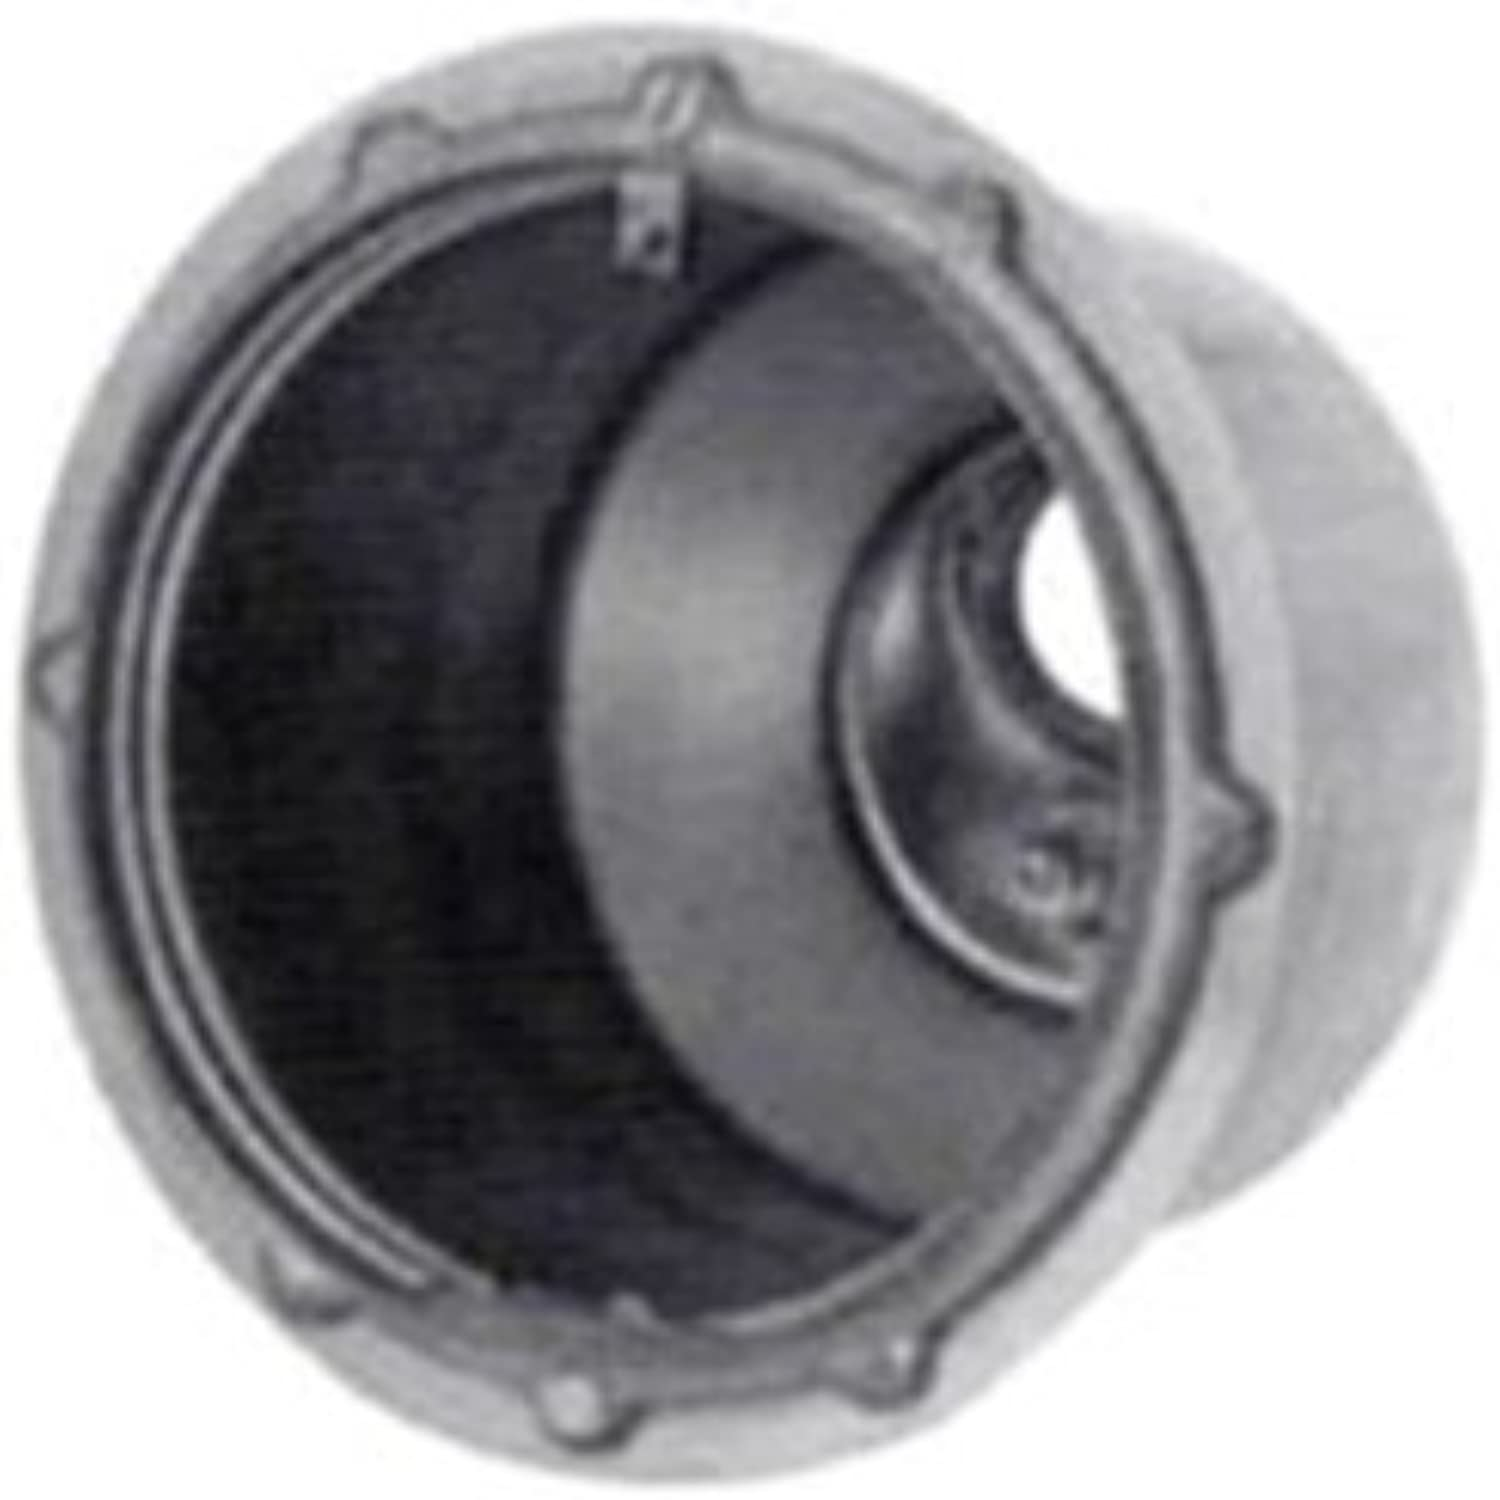 Pentair 78244300 1  Rear Hub Replacement Stainless Steel Pool or Spa Niches